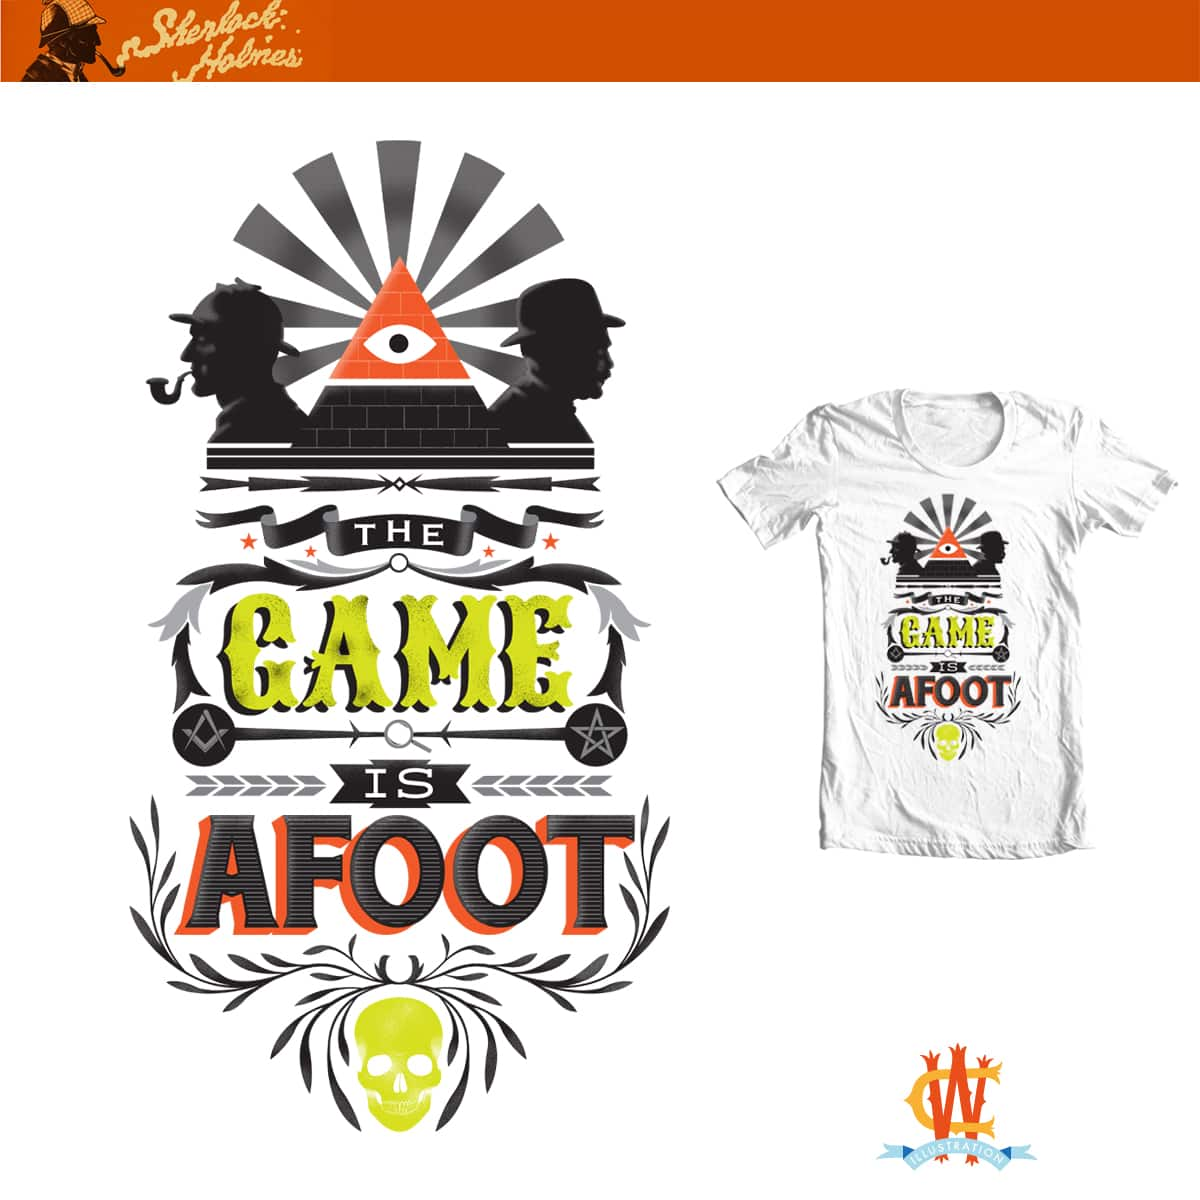 The Game by Wharton on Threadless